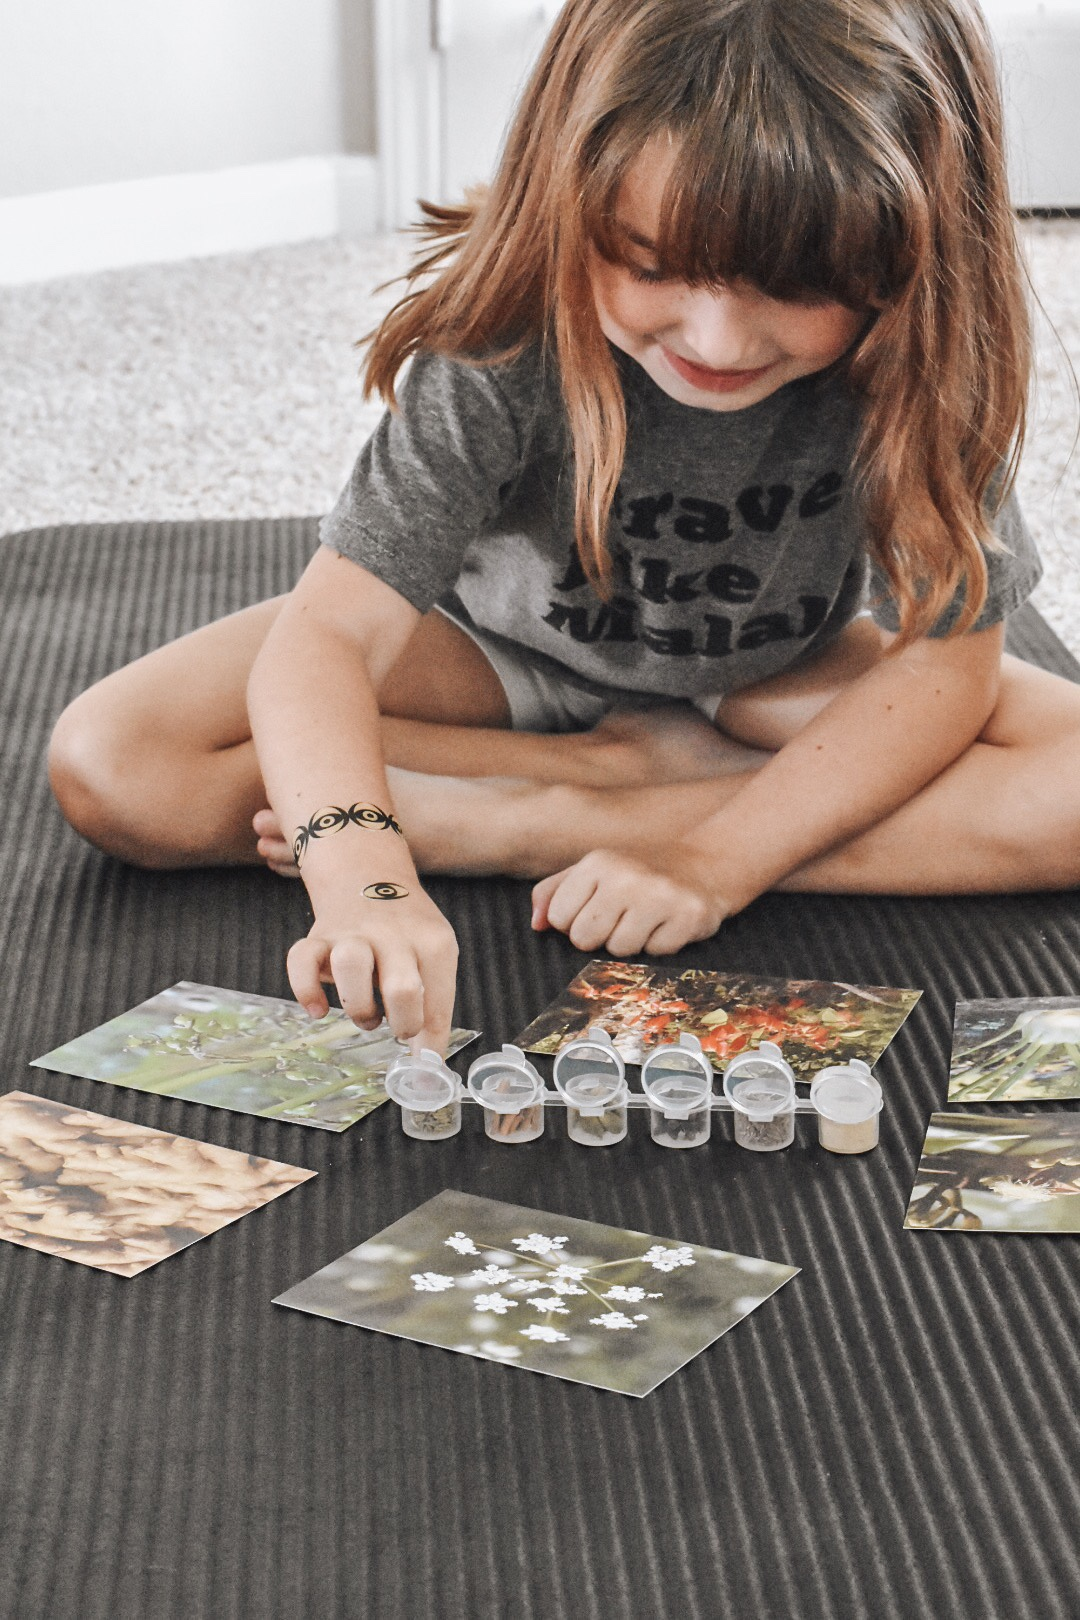 science subscription box for kids, identifying plants and spices